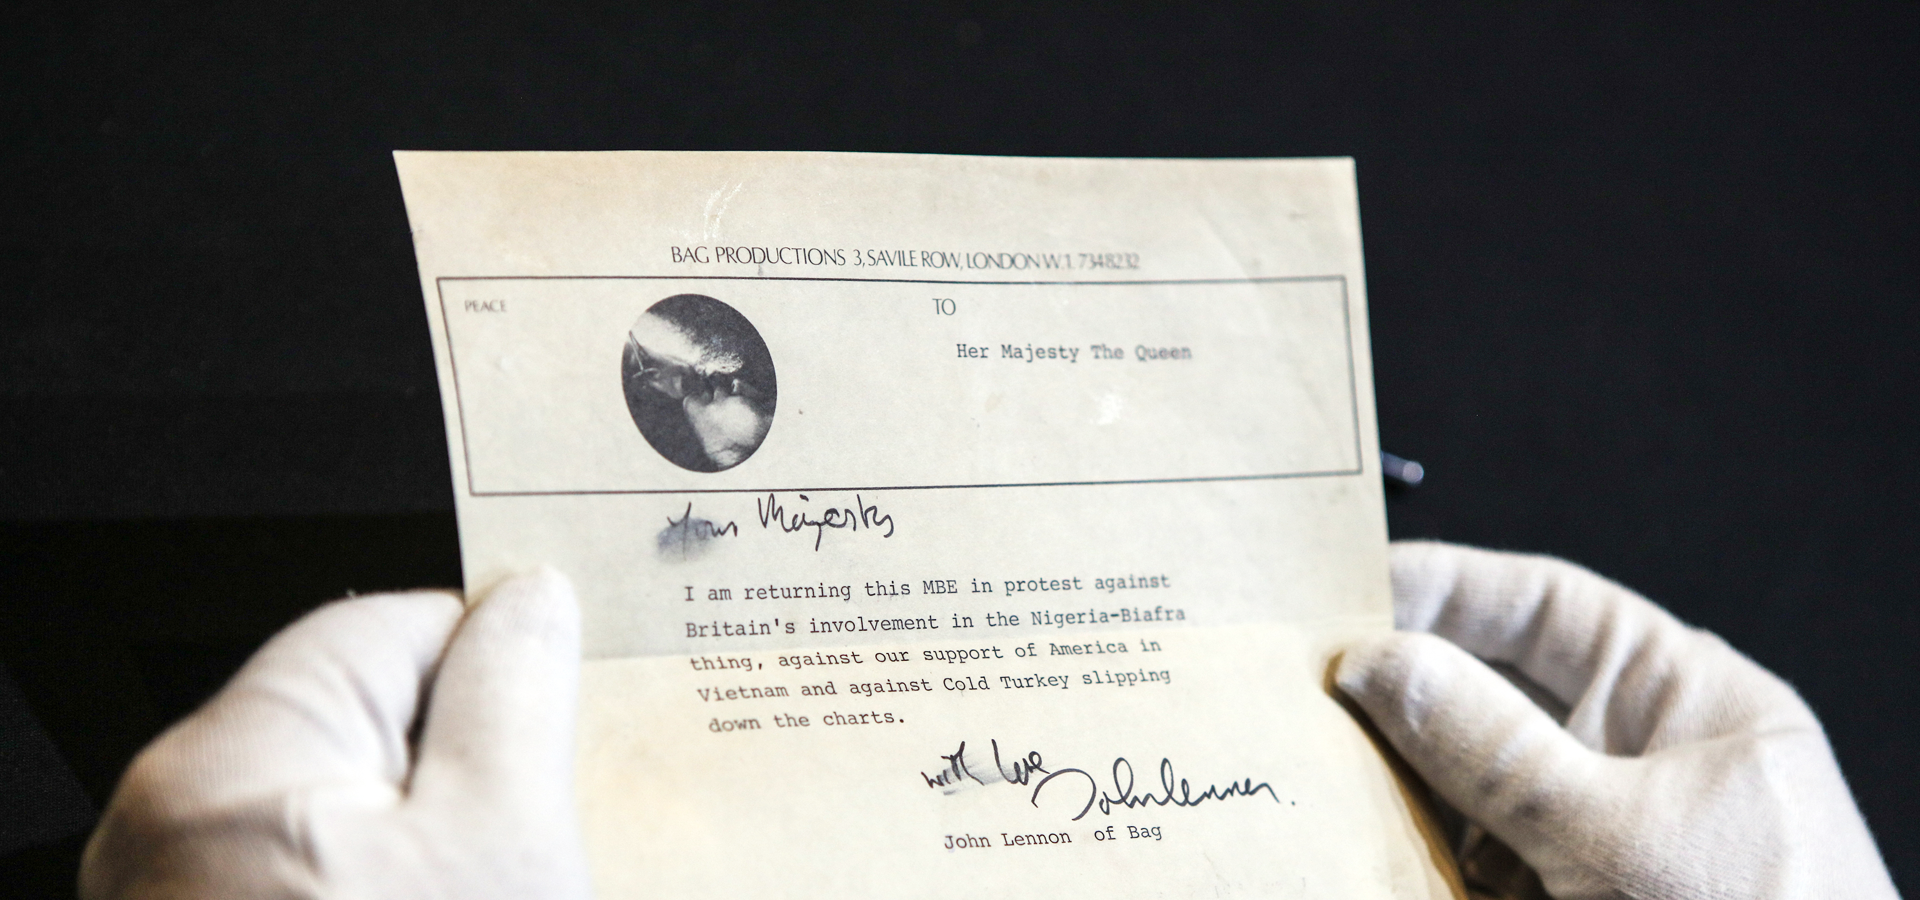 Lennon of Bag: Letter to The Queen goes on display